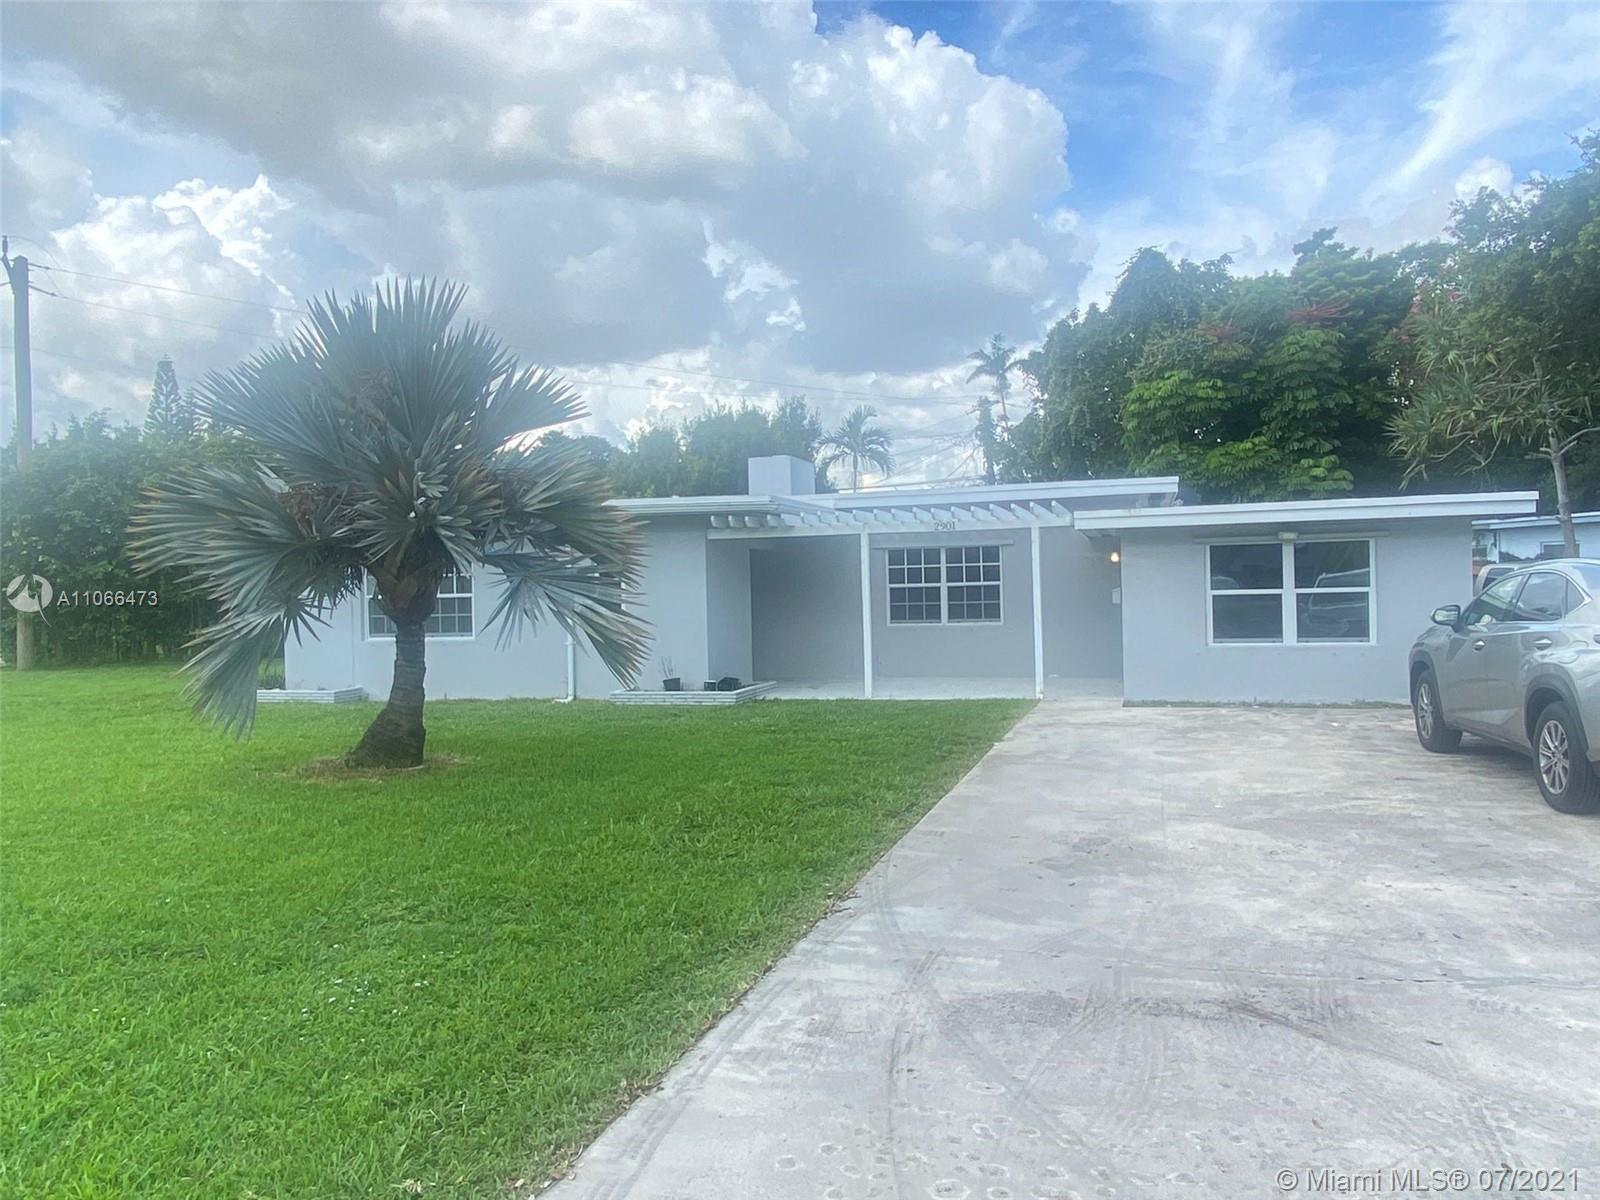 Newly remodeled 2 Units single family home close to Las Olas Beach and Broward downtown. House is di